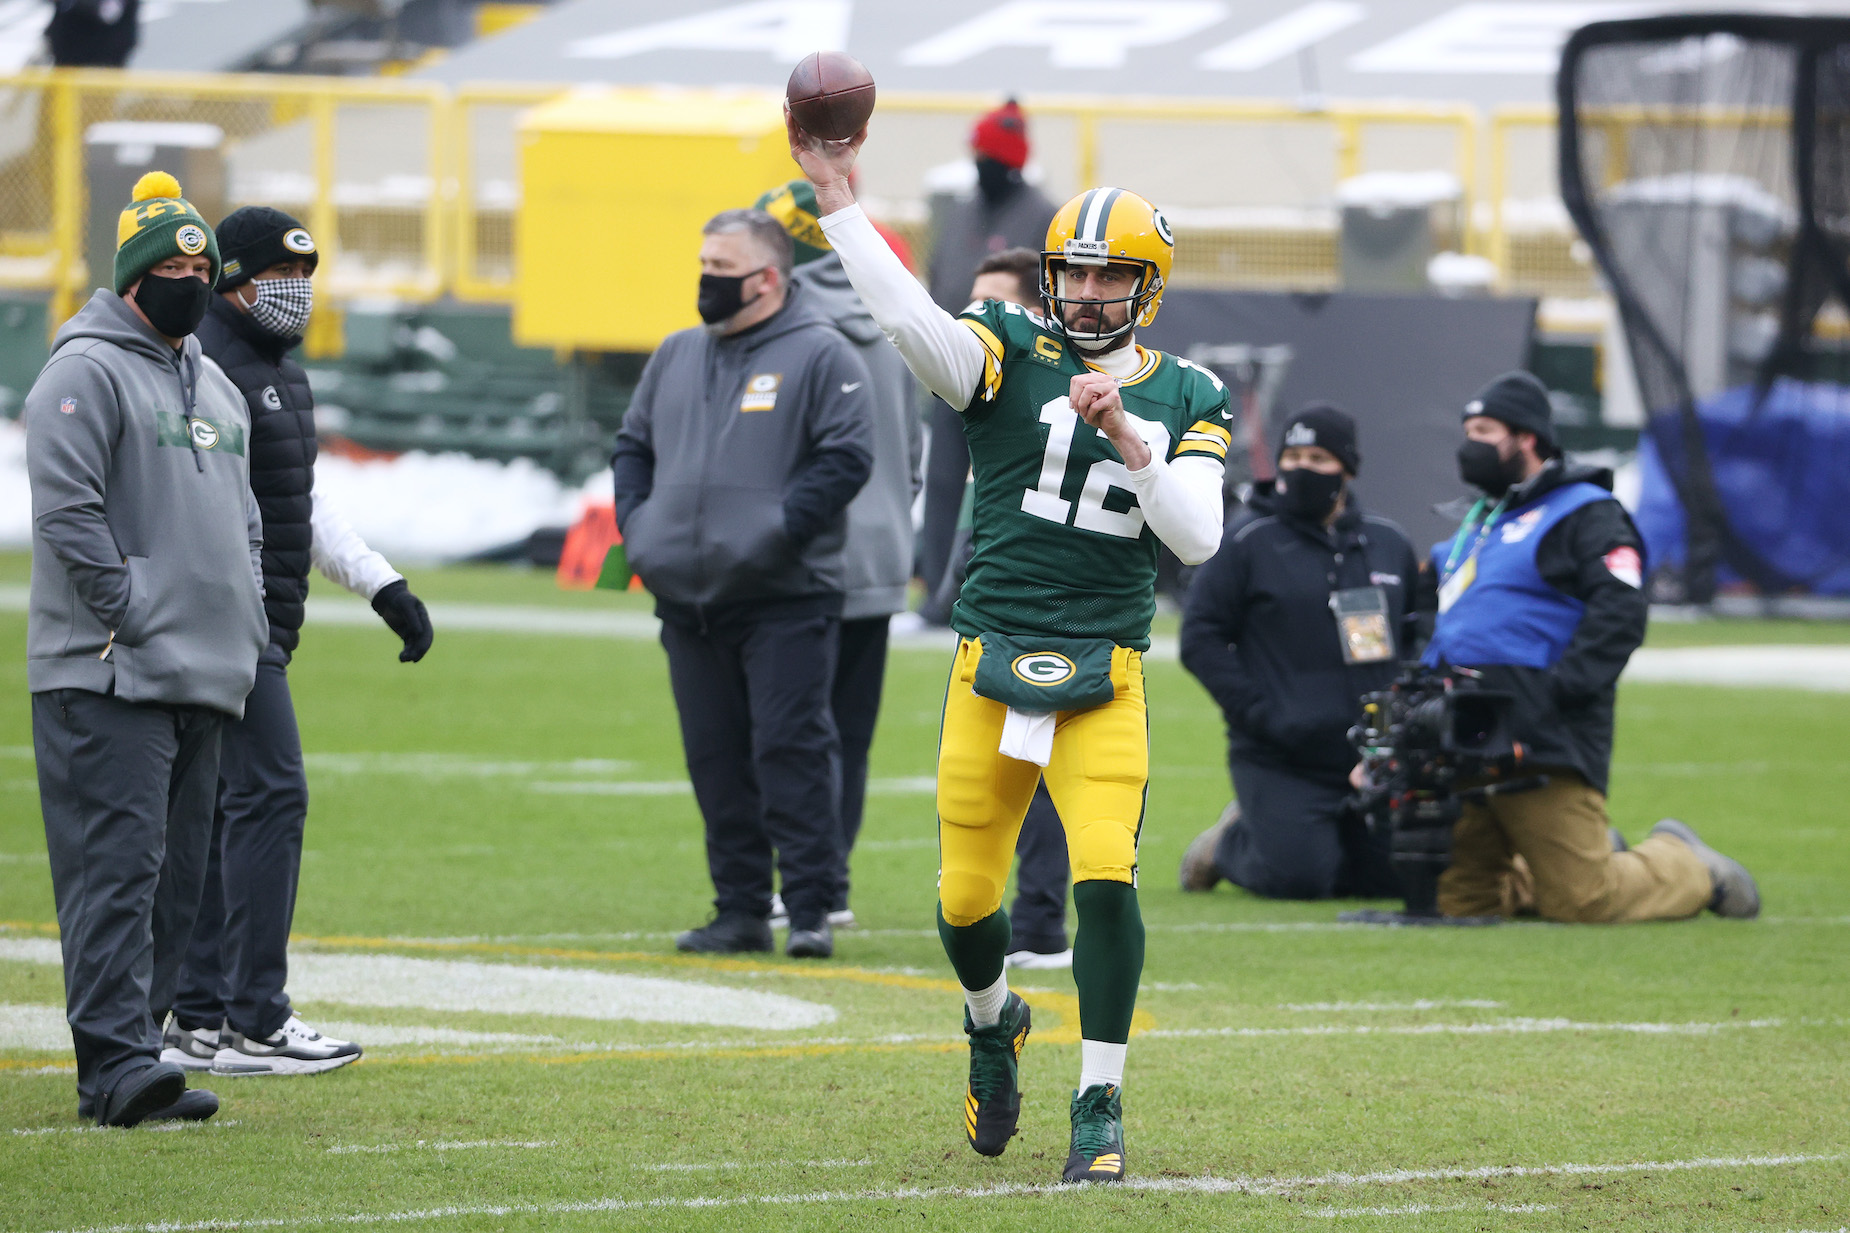 Green Bay Packers quarterback and Jeopardy guest host Aaron Rodgers warms up ahead of the 2020 NFC Championship game.